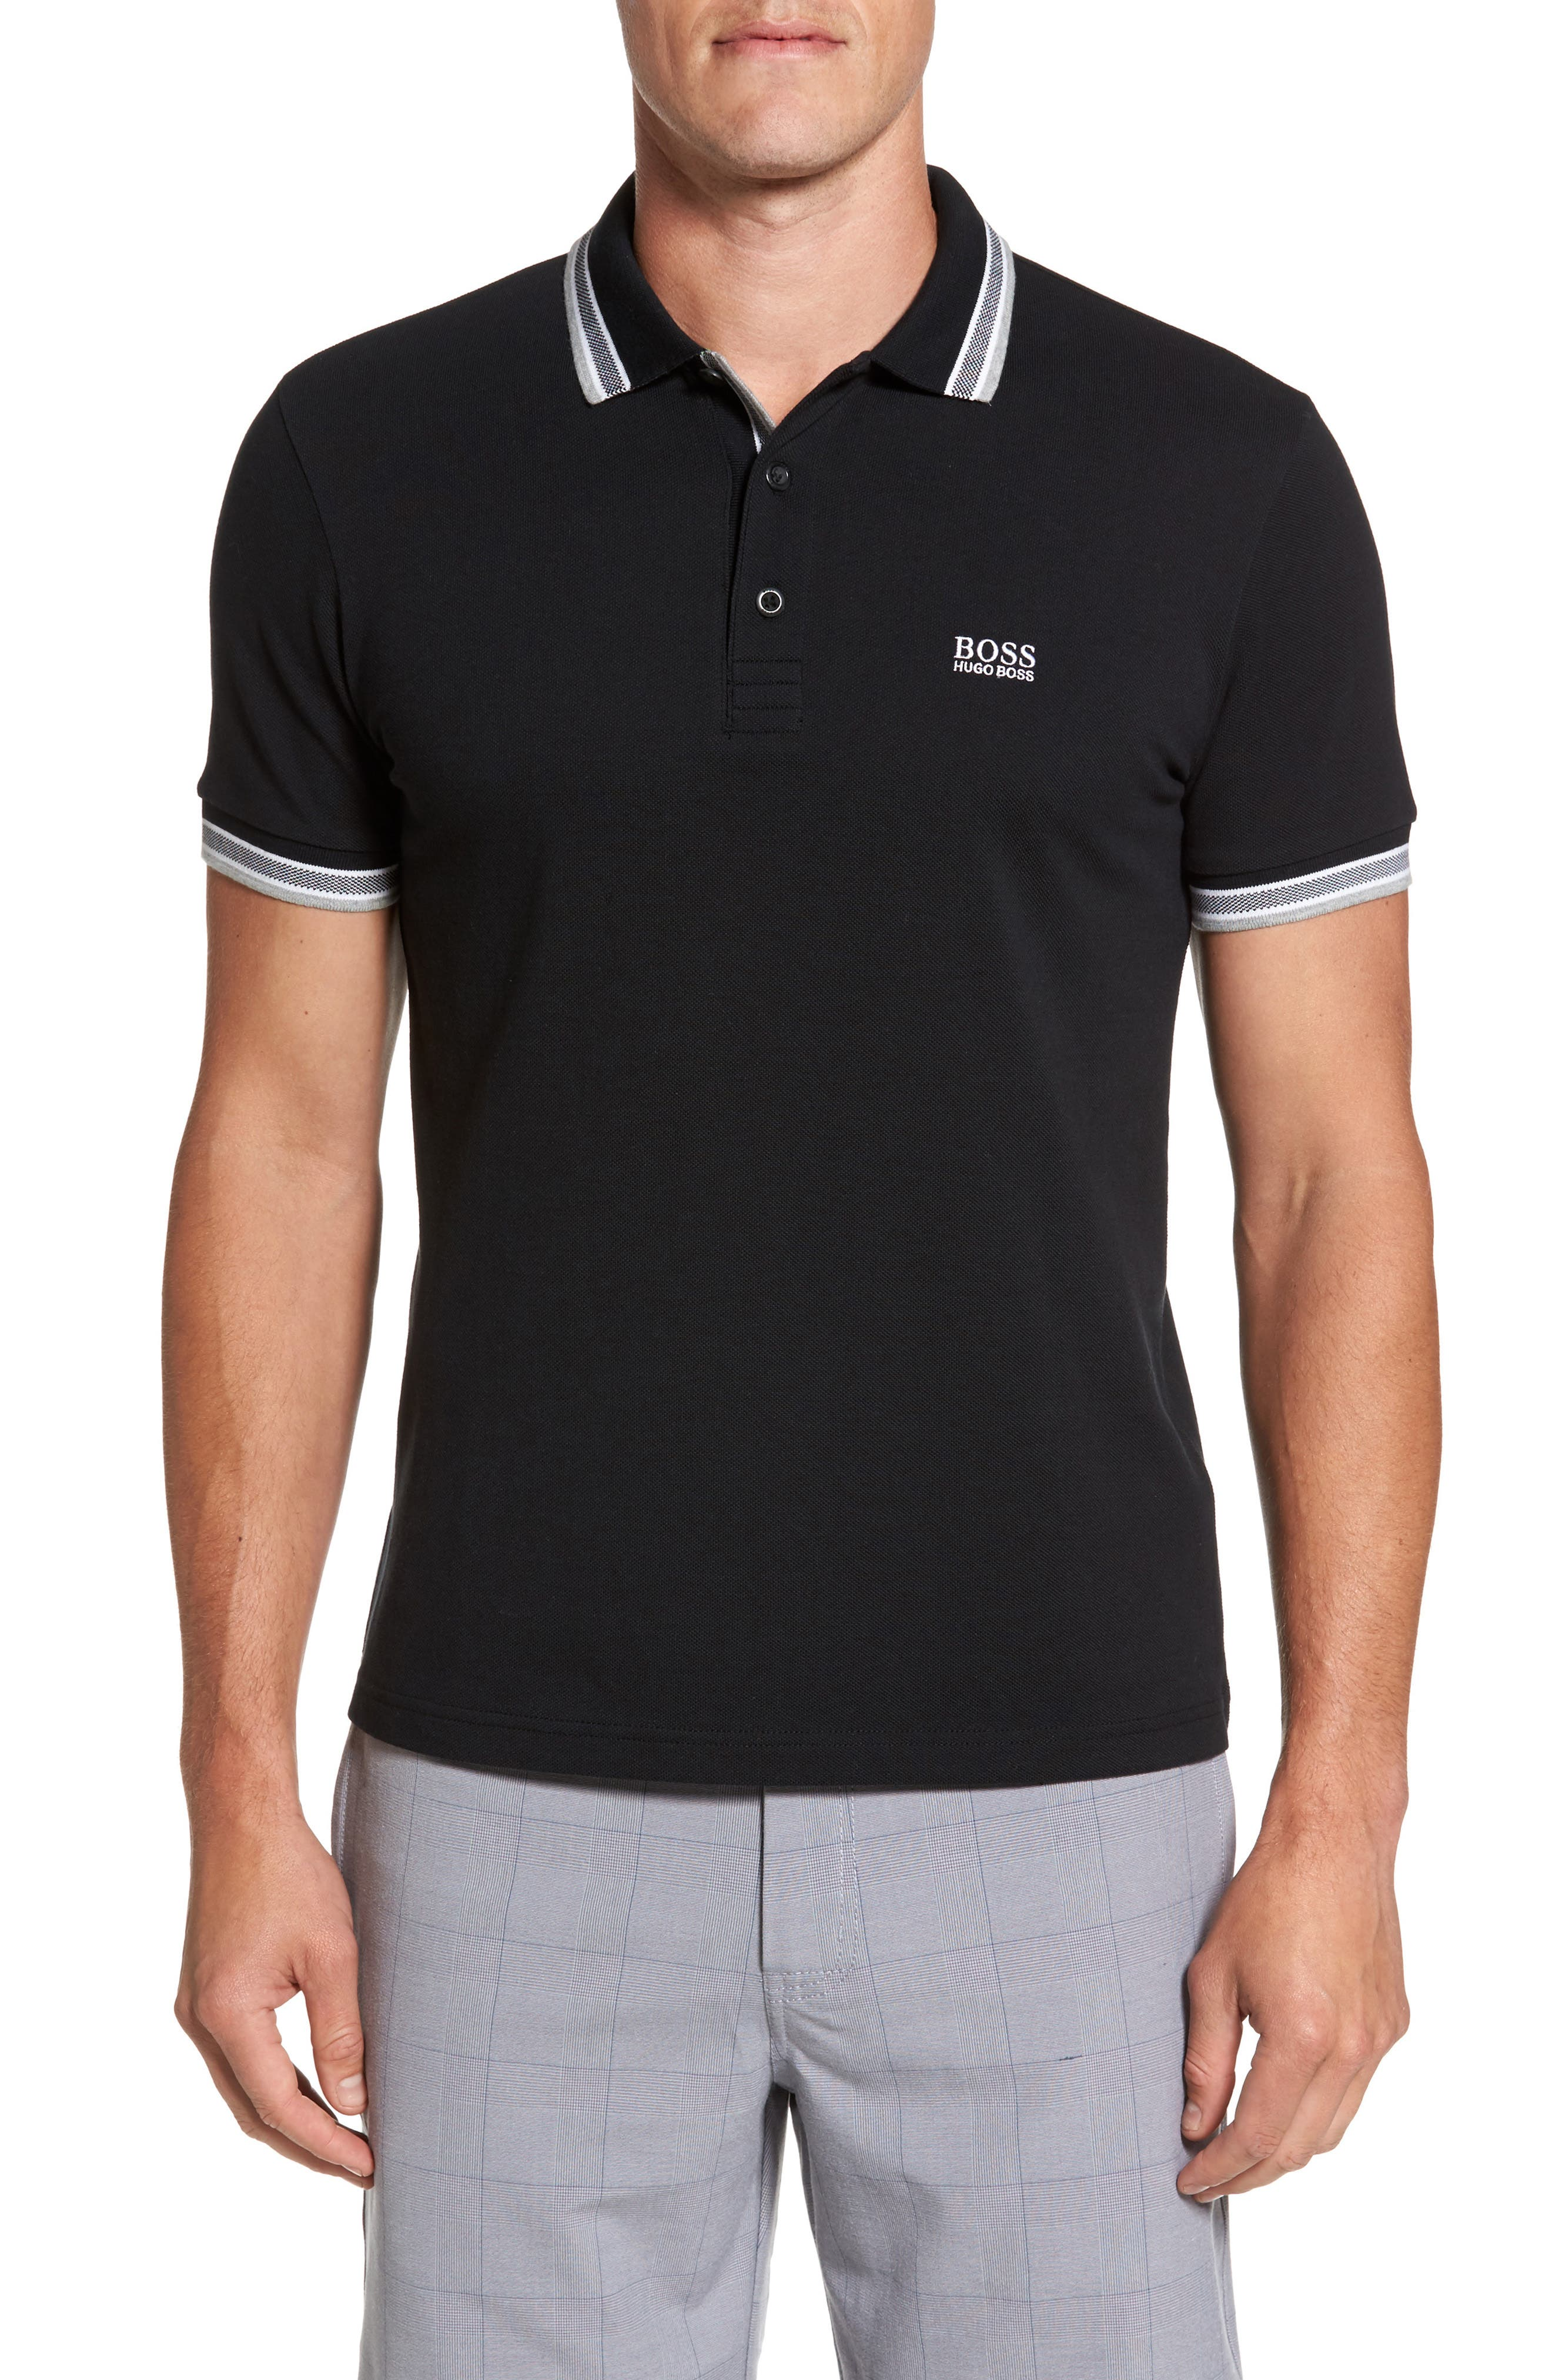 Alternate Image 1 Selected - BOSS Green 'Basic' Piqué Golf Polo